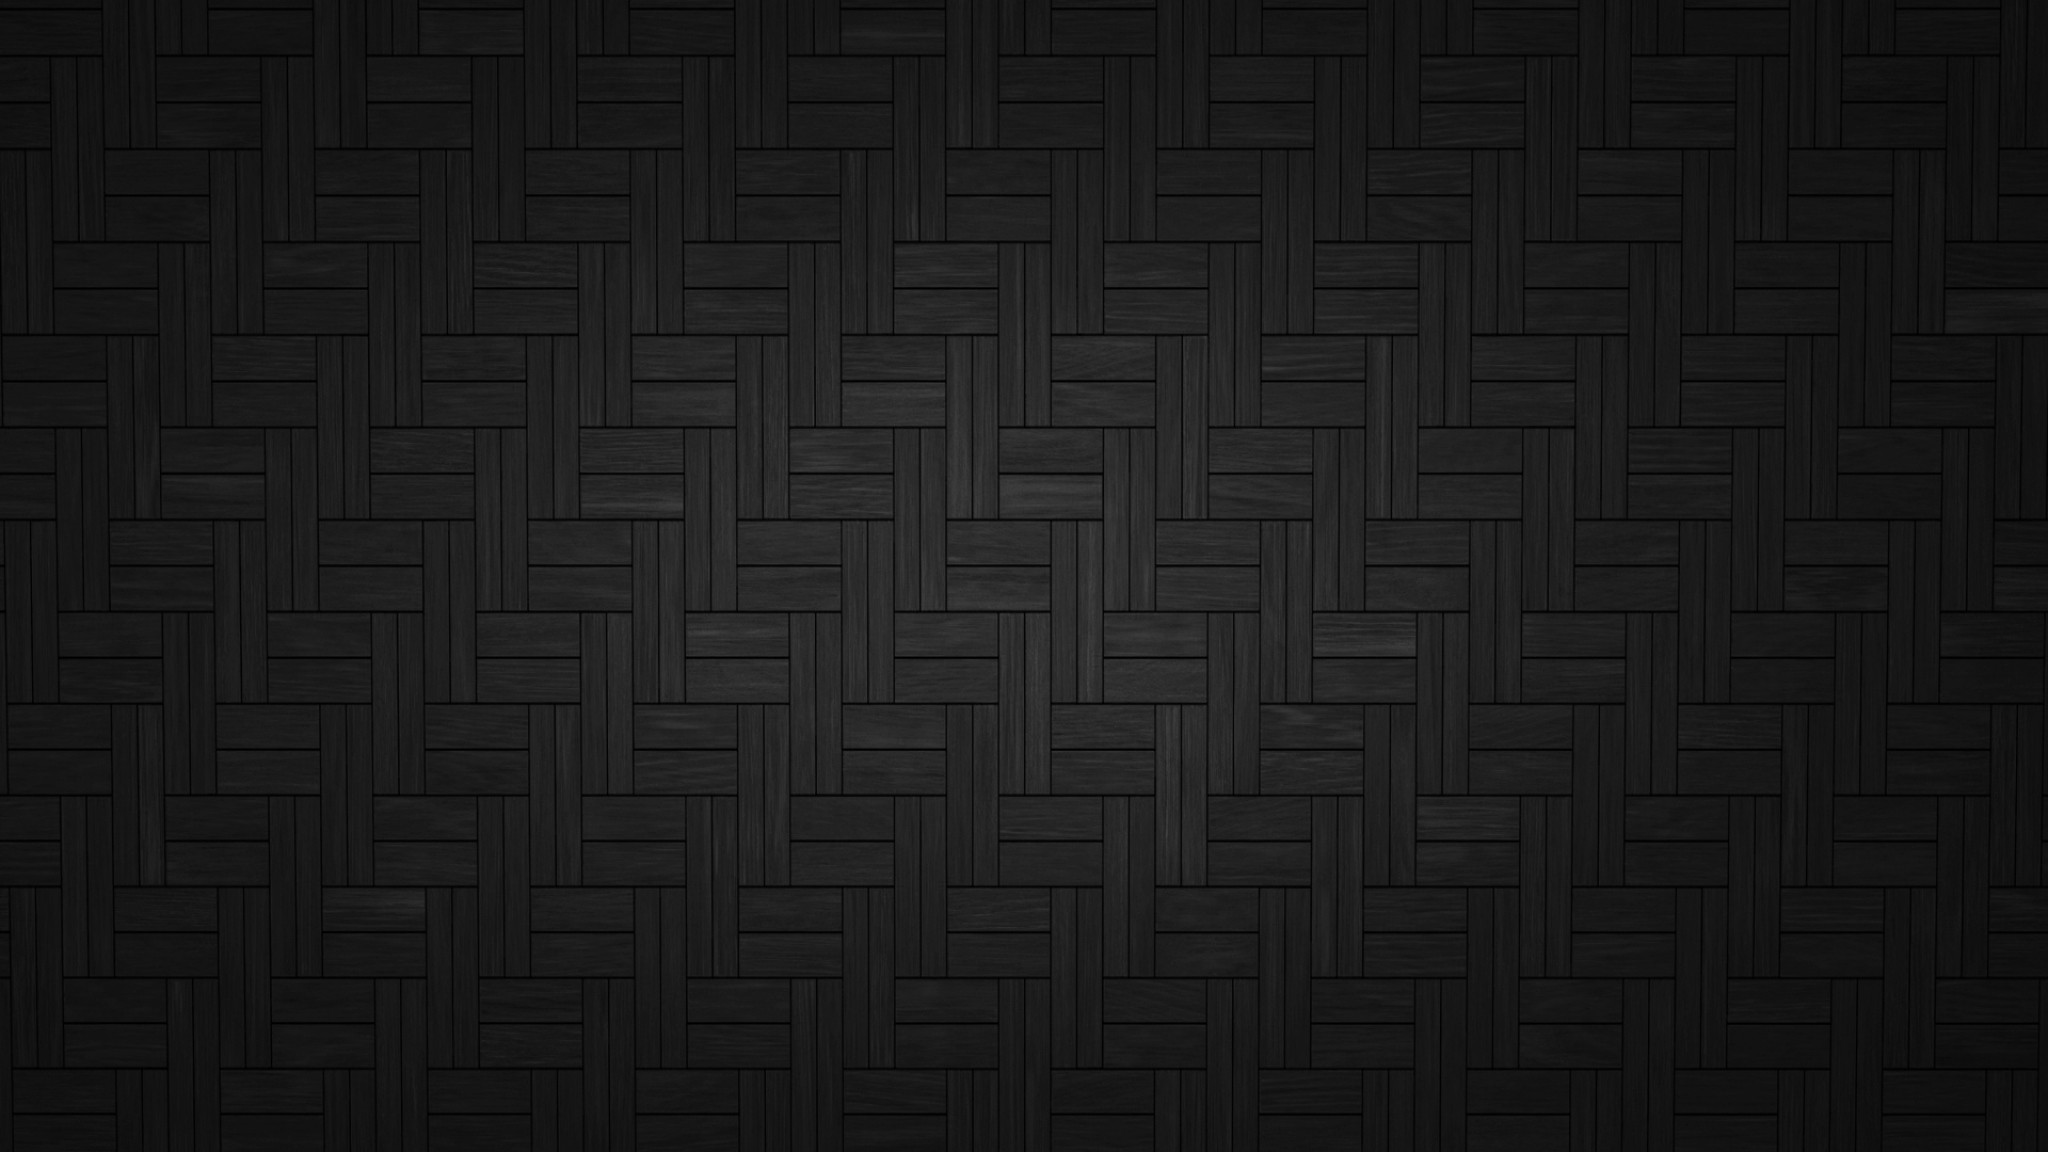 2048x1152 Wallpaper Dark Background Line Surface